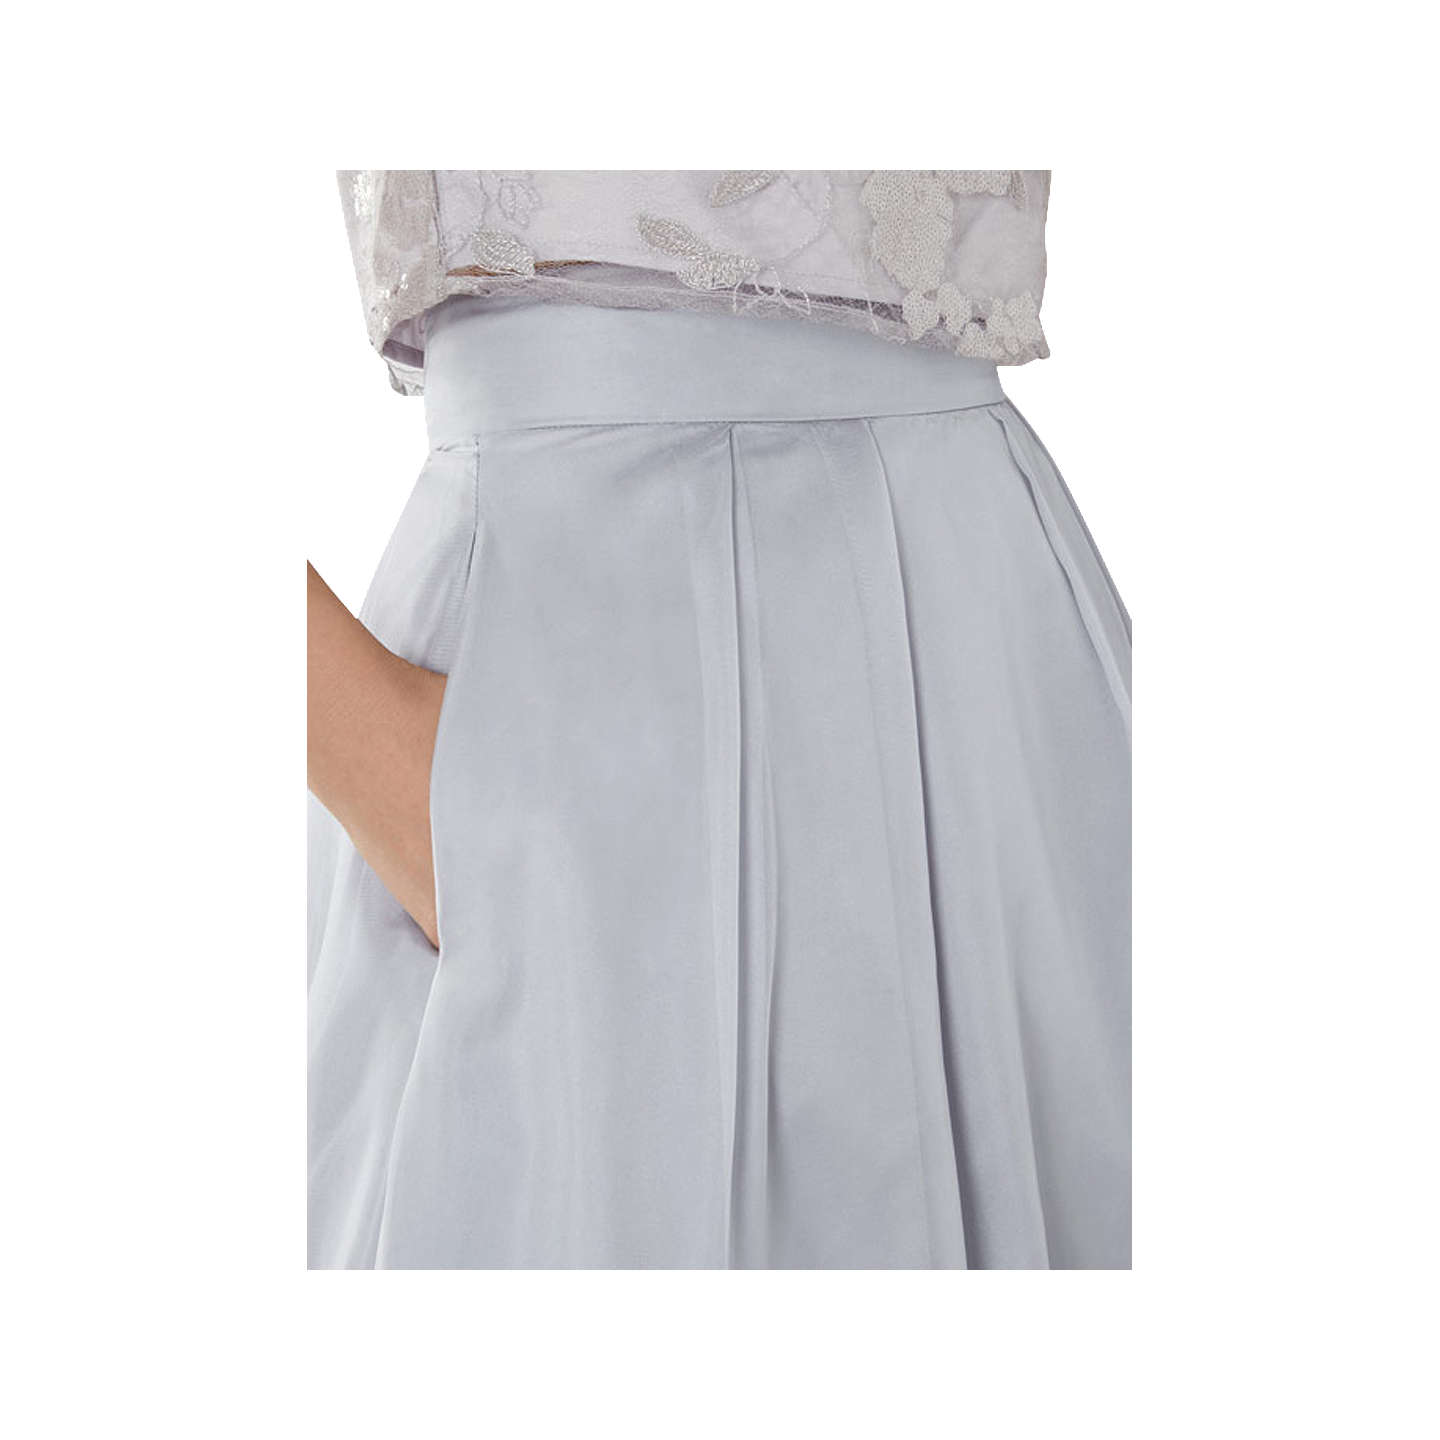 BuyCoast Iridesa Skirt, Silver Grey, 6 Online at johnlewis.com